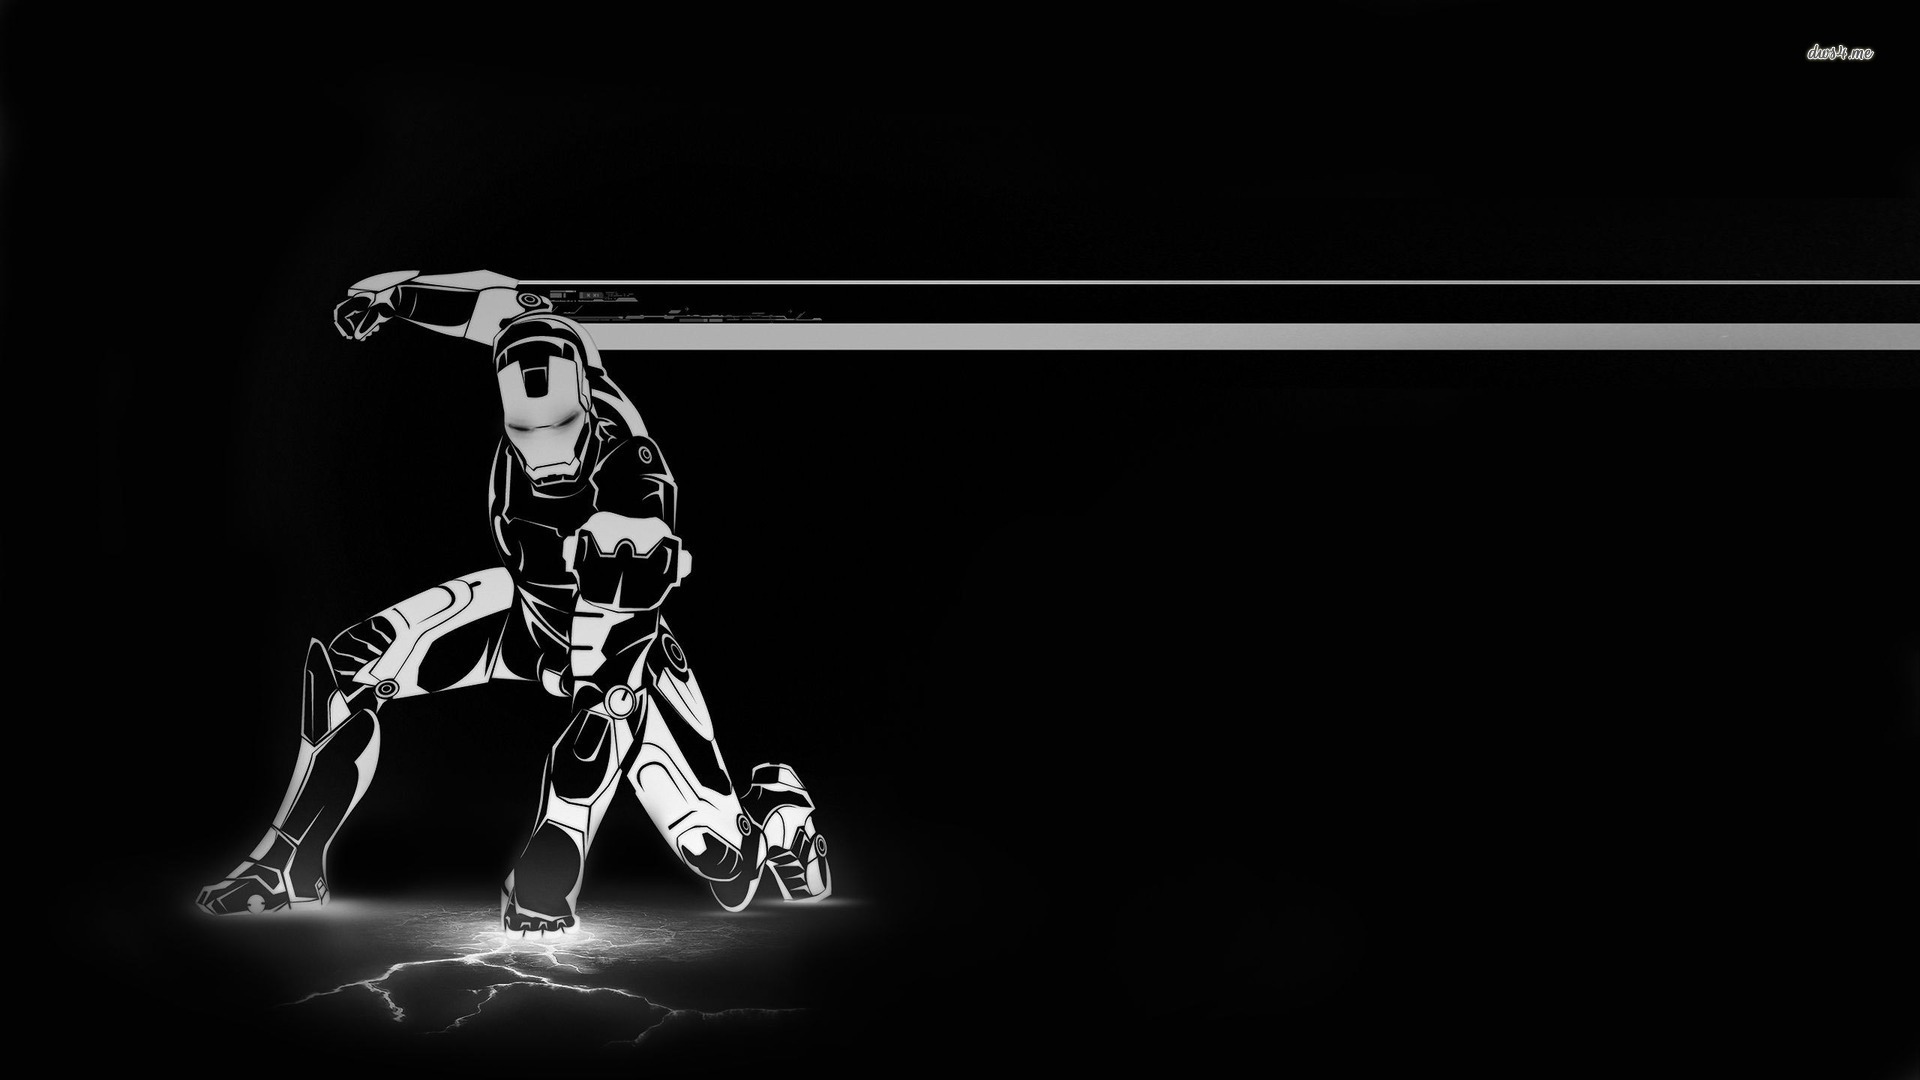 ultra hd wallpaper of ironman for pc